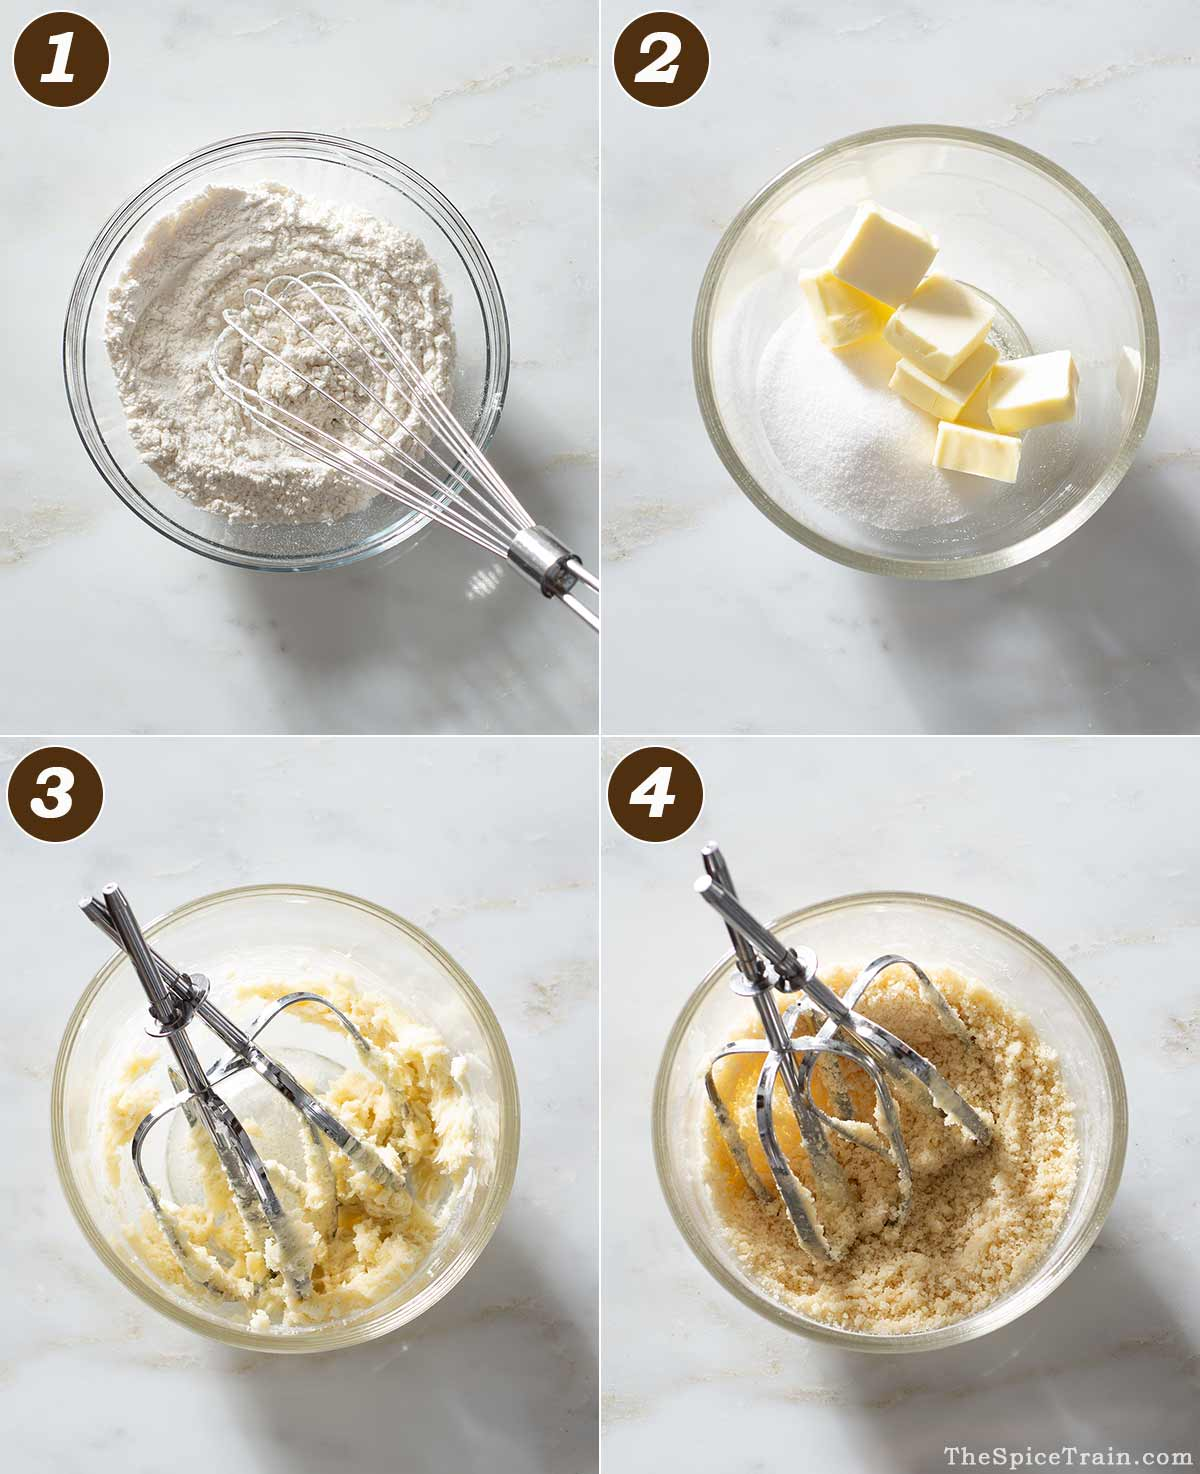 Cookie dough being prepared in four steps.